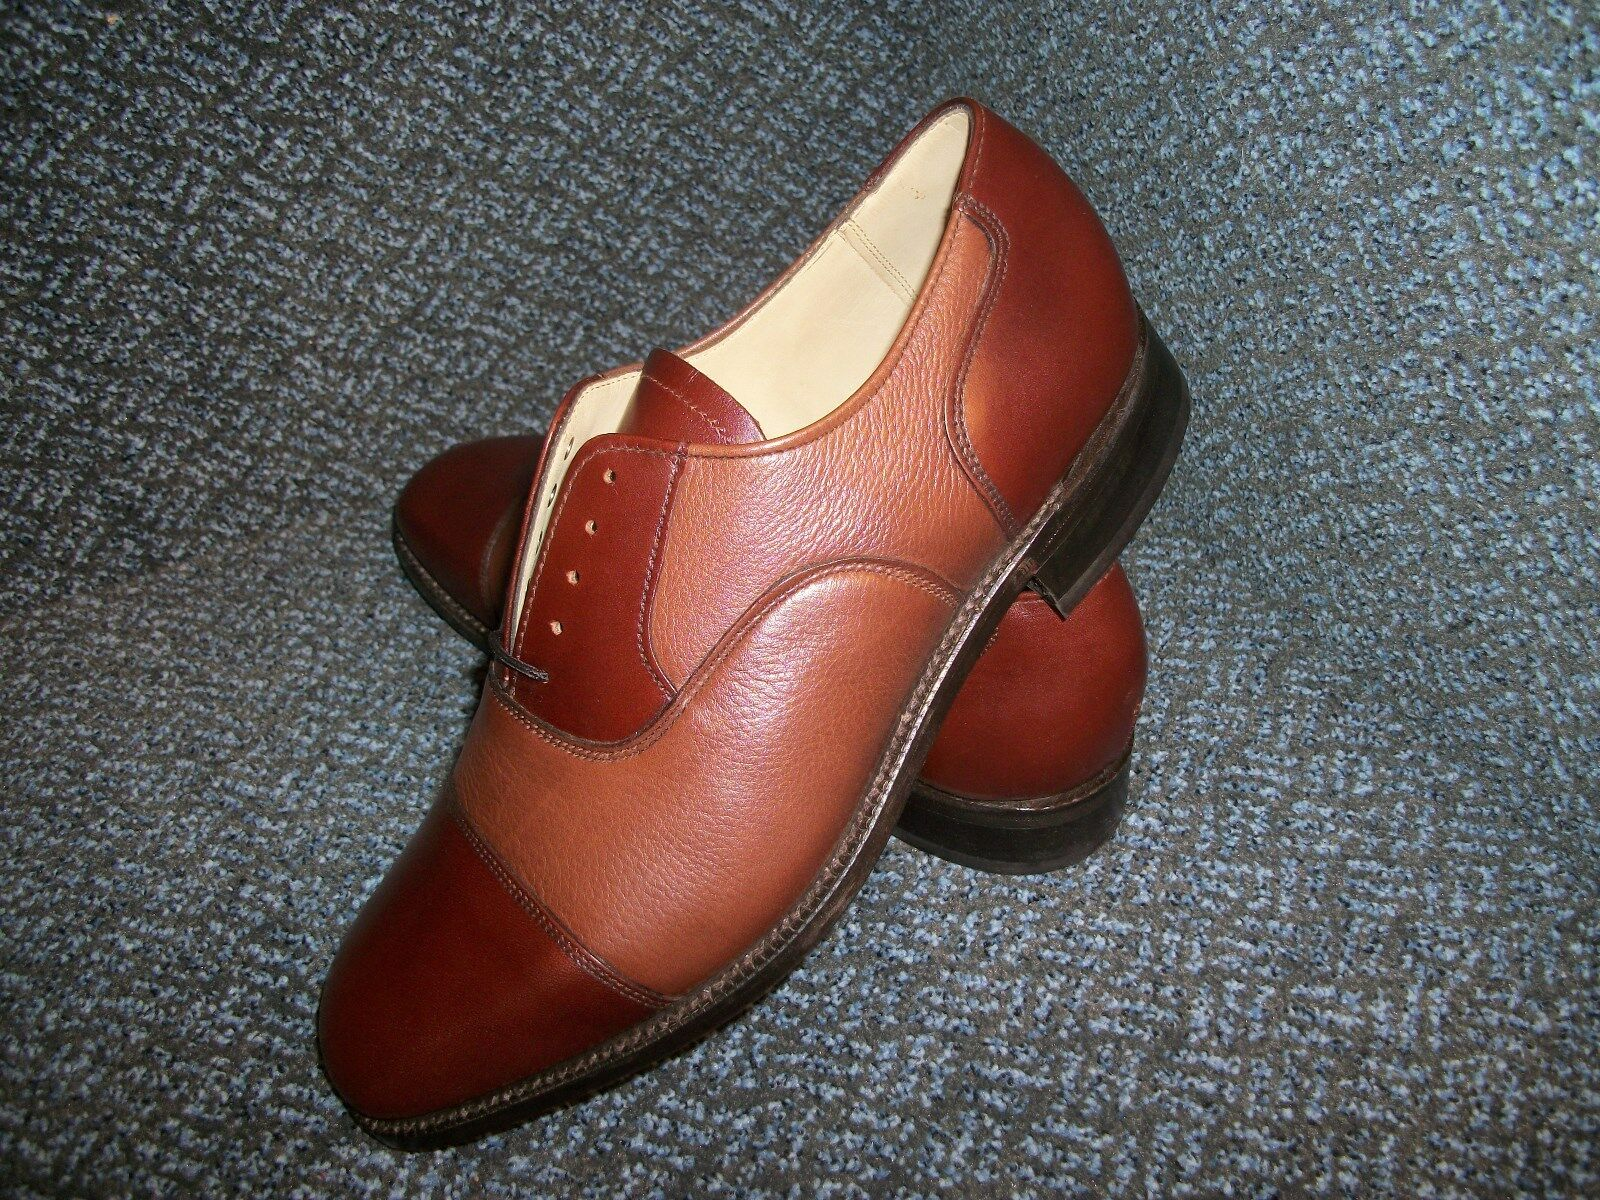 MEN'S BROWN SIZE 6.5 TWO TONED BROWN MEN'S FULL GRAIN LEATHER OXFORDS 972883